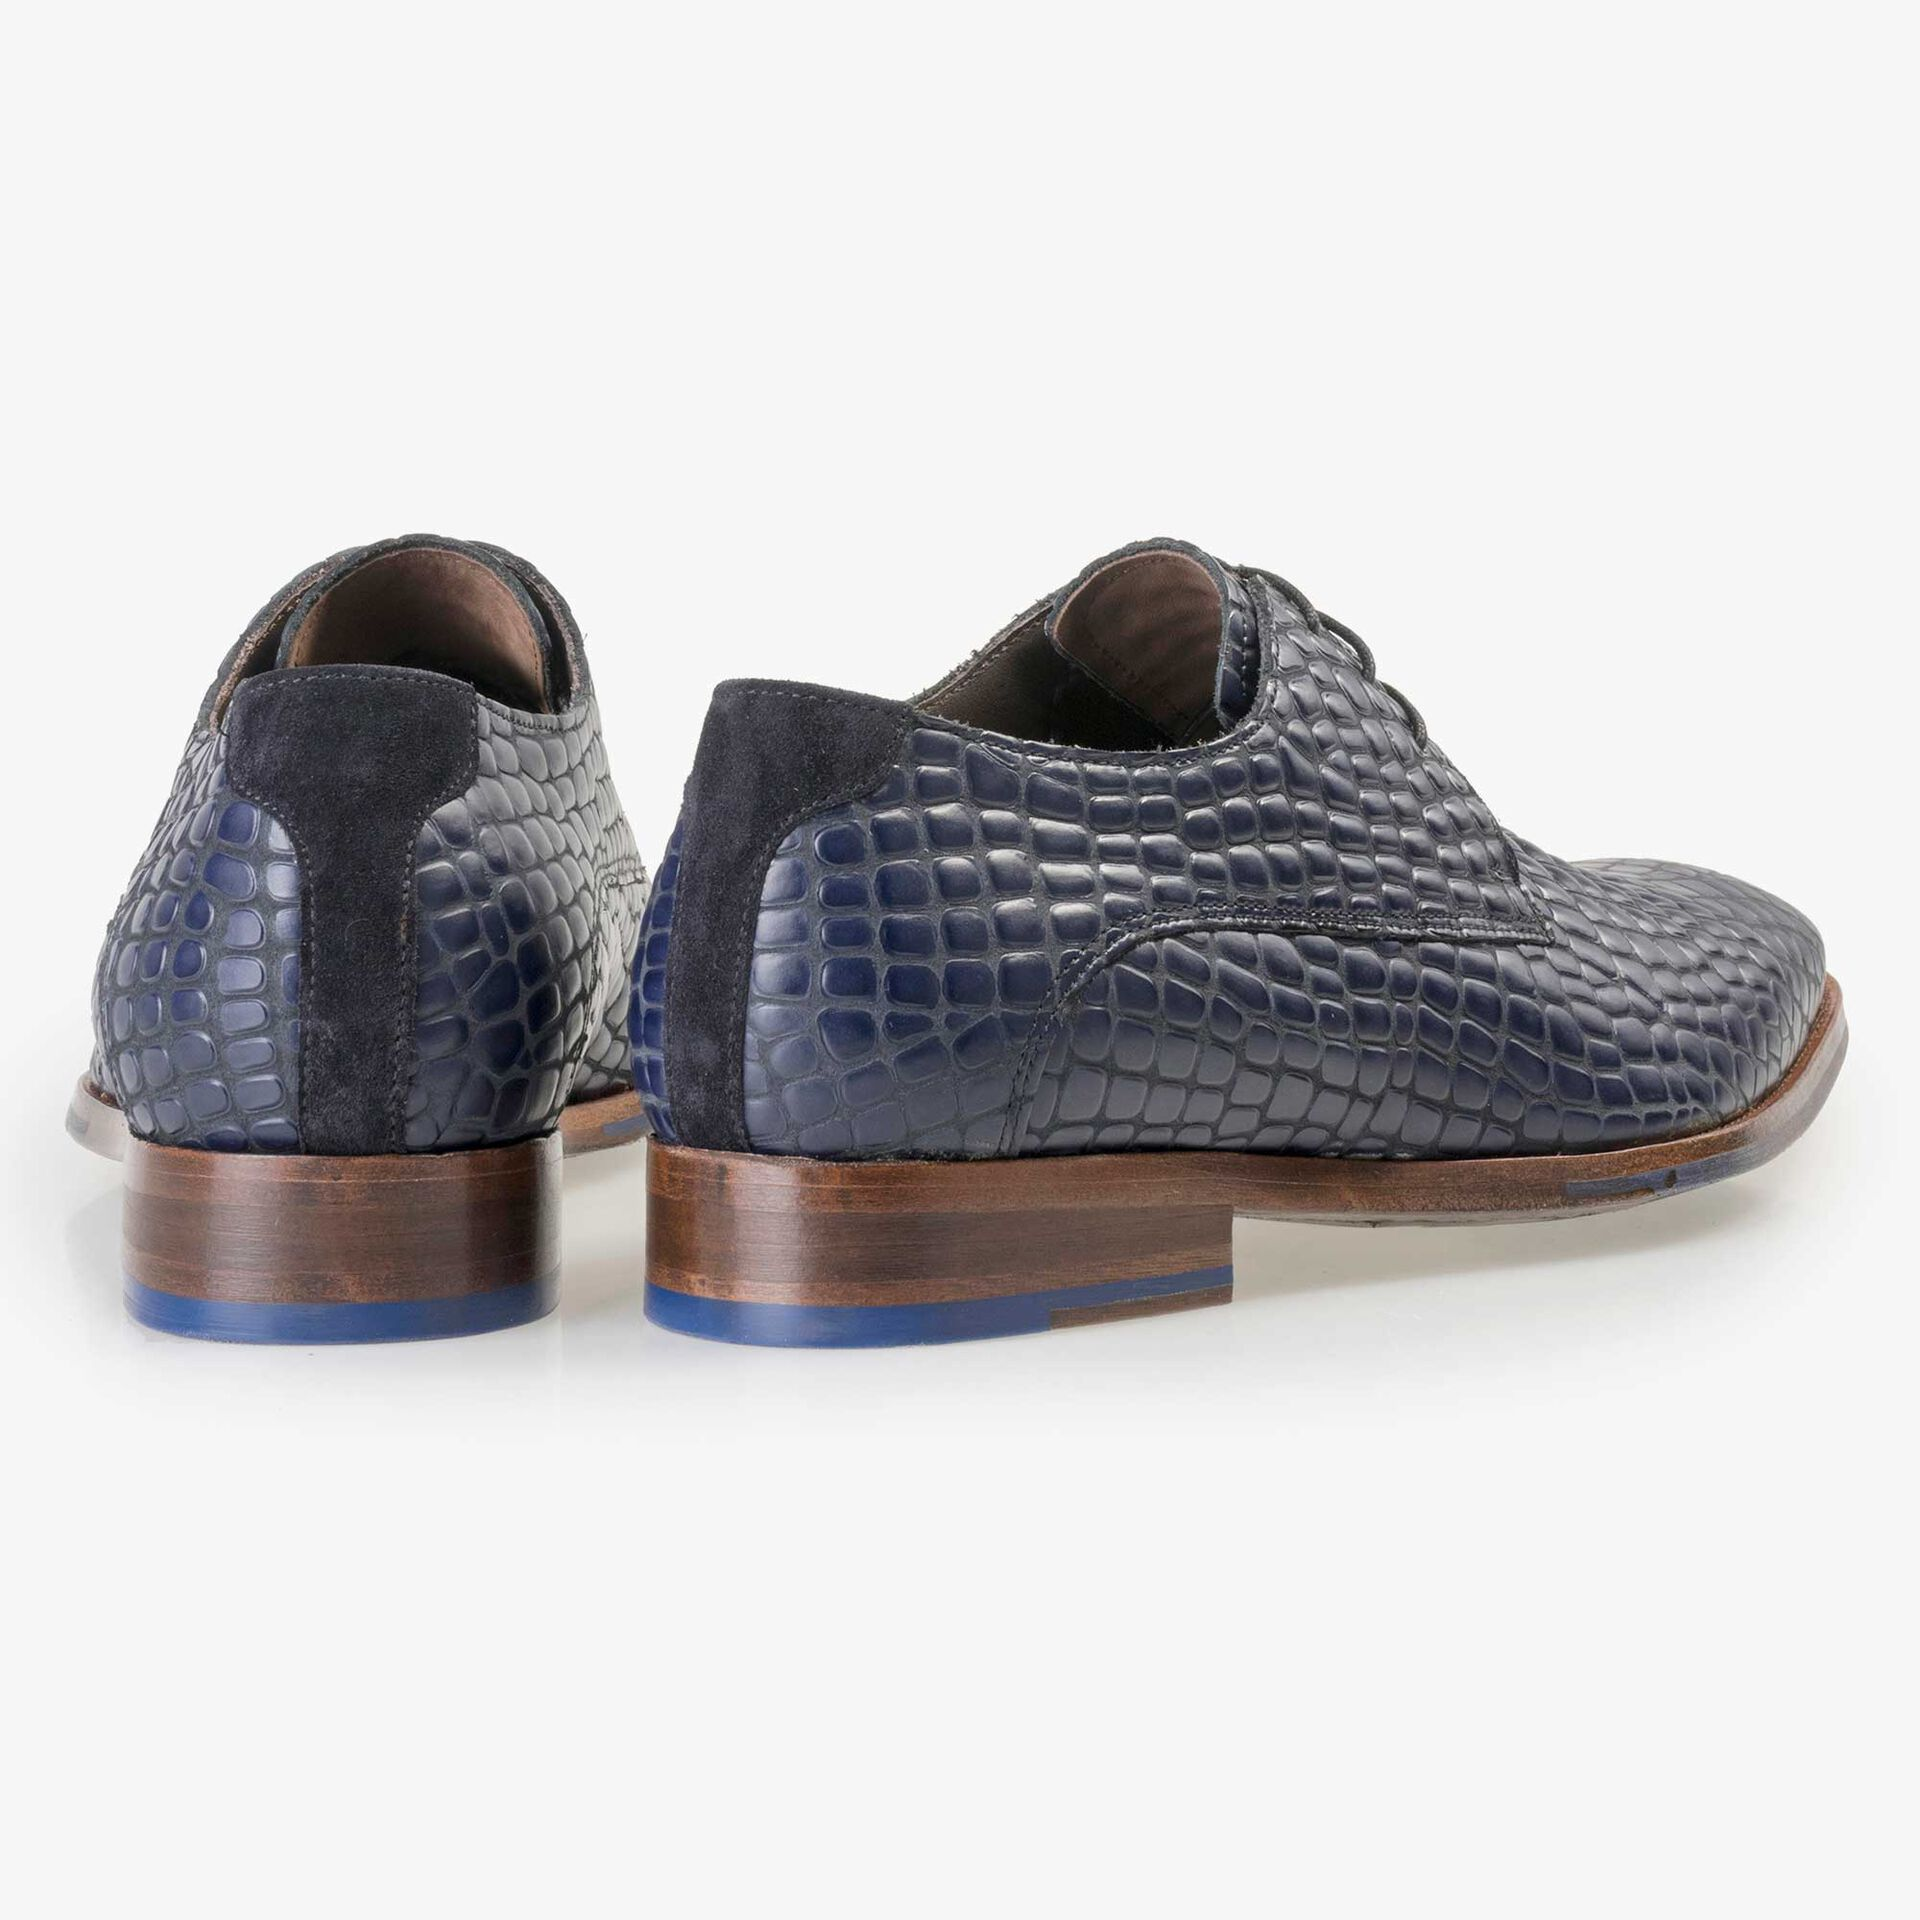 Floris van Bommel black calf's leather lace shoe finished with a blue reptile pattern